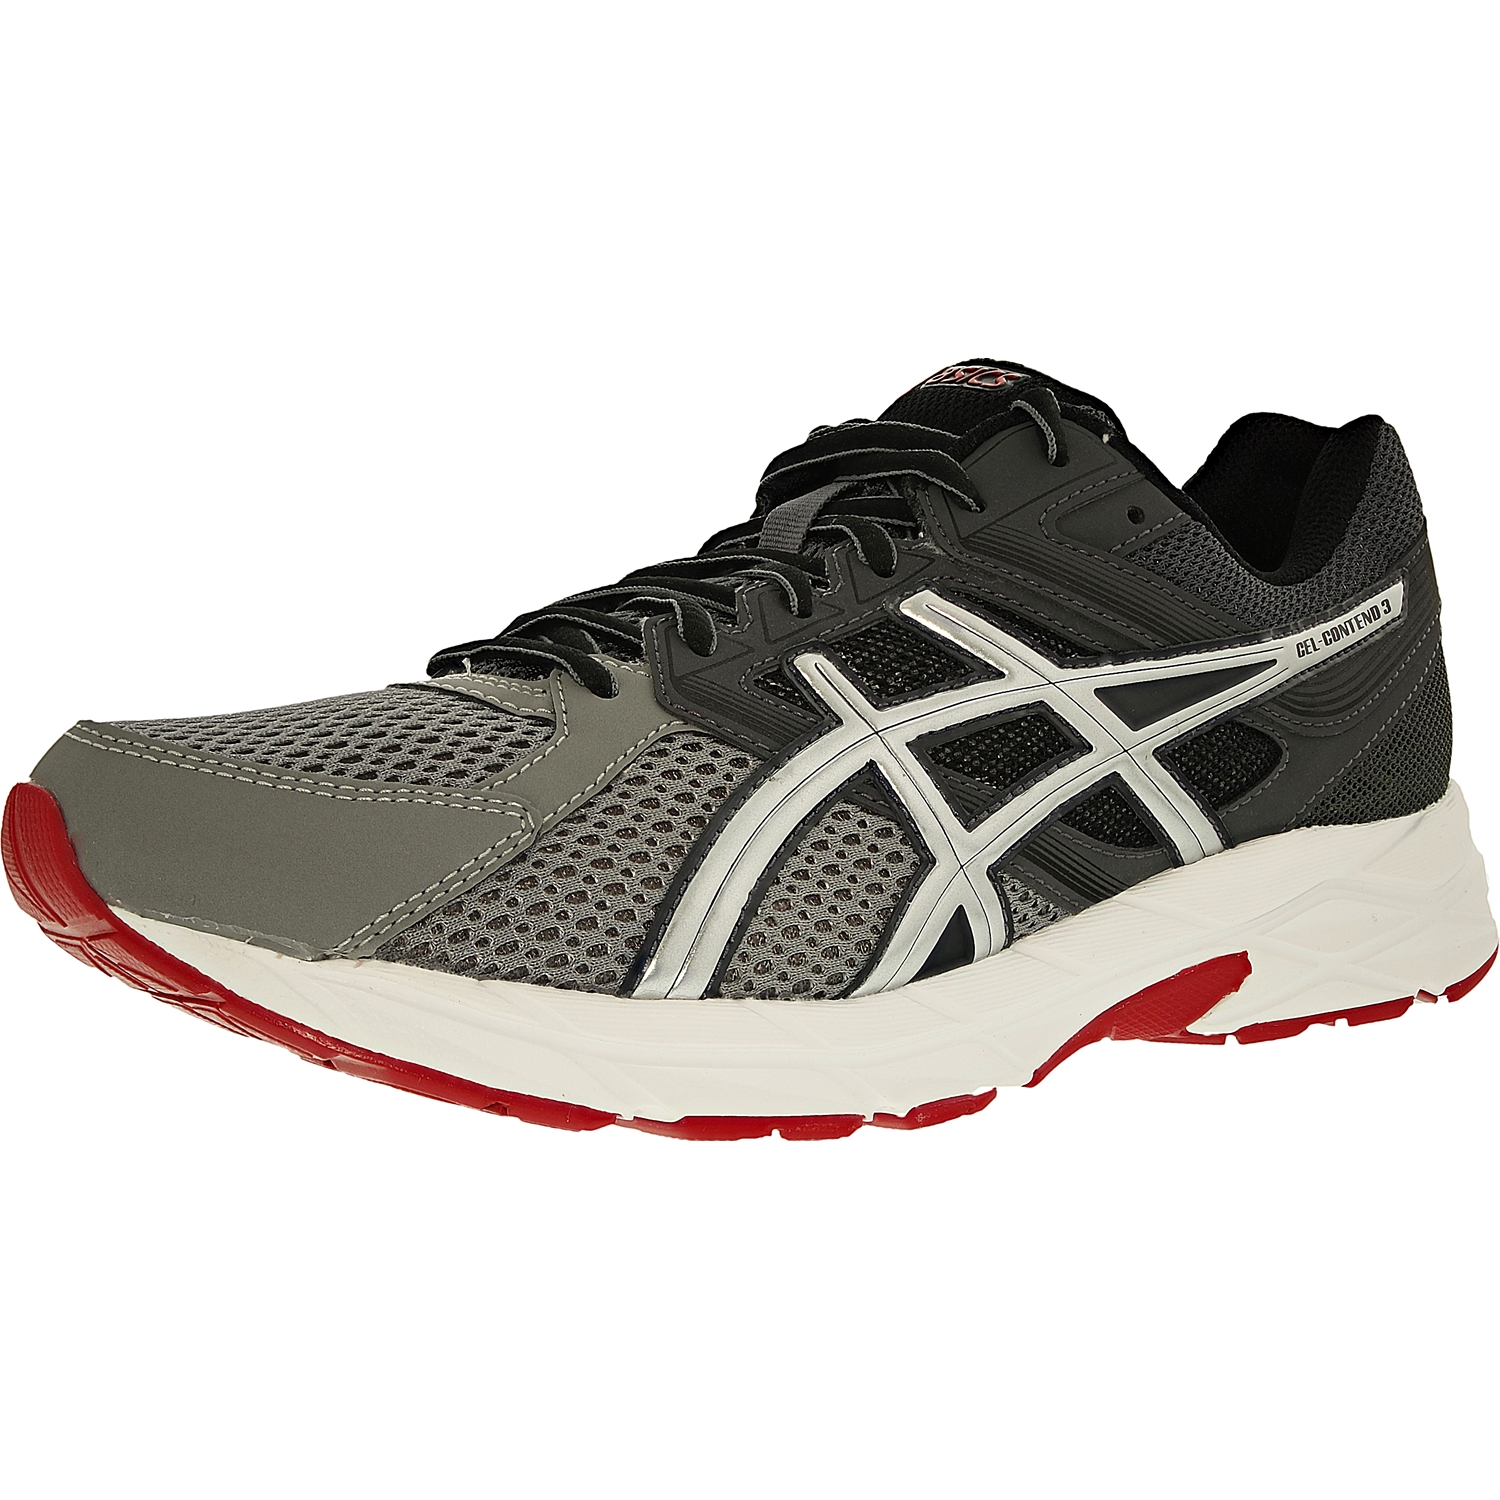 Asics Men's Gel-Contend 3 Titanium Silver Red Ankle-High Running Shoe 8M by Asics